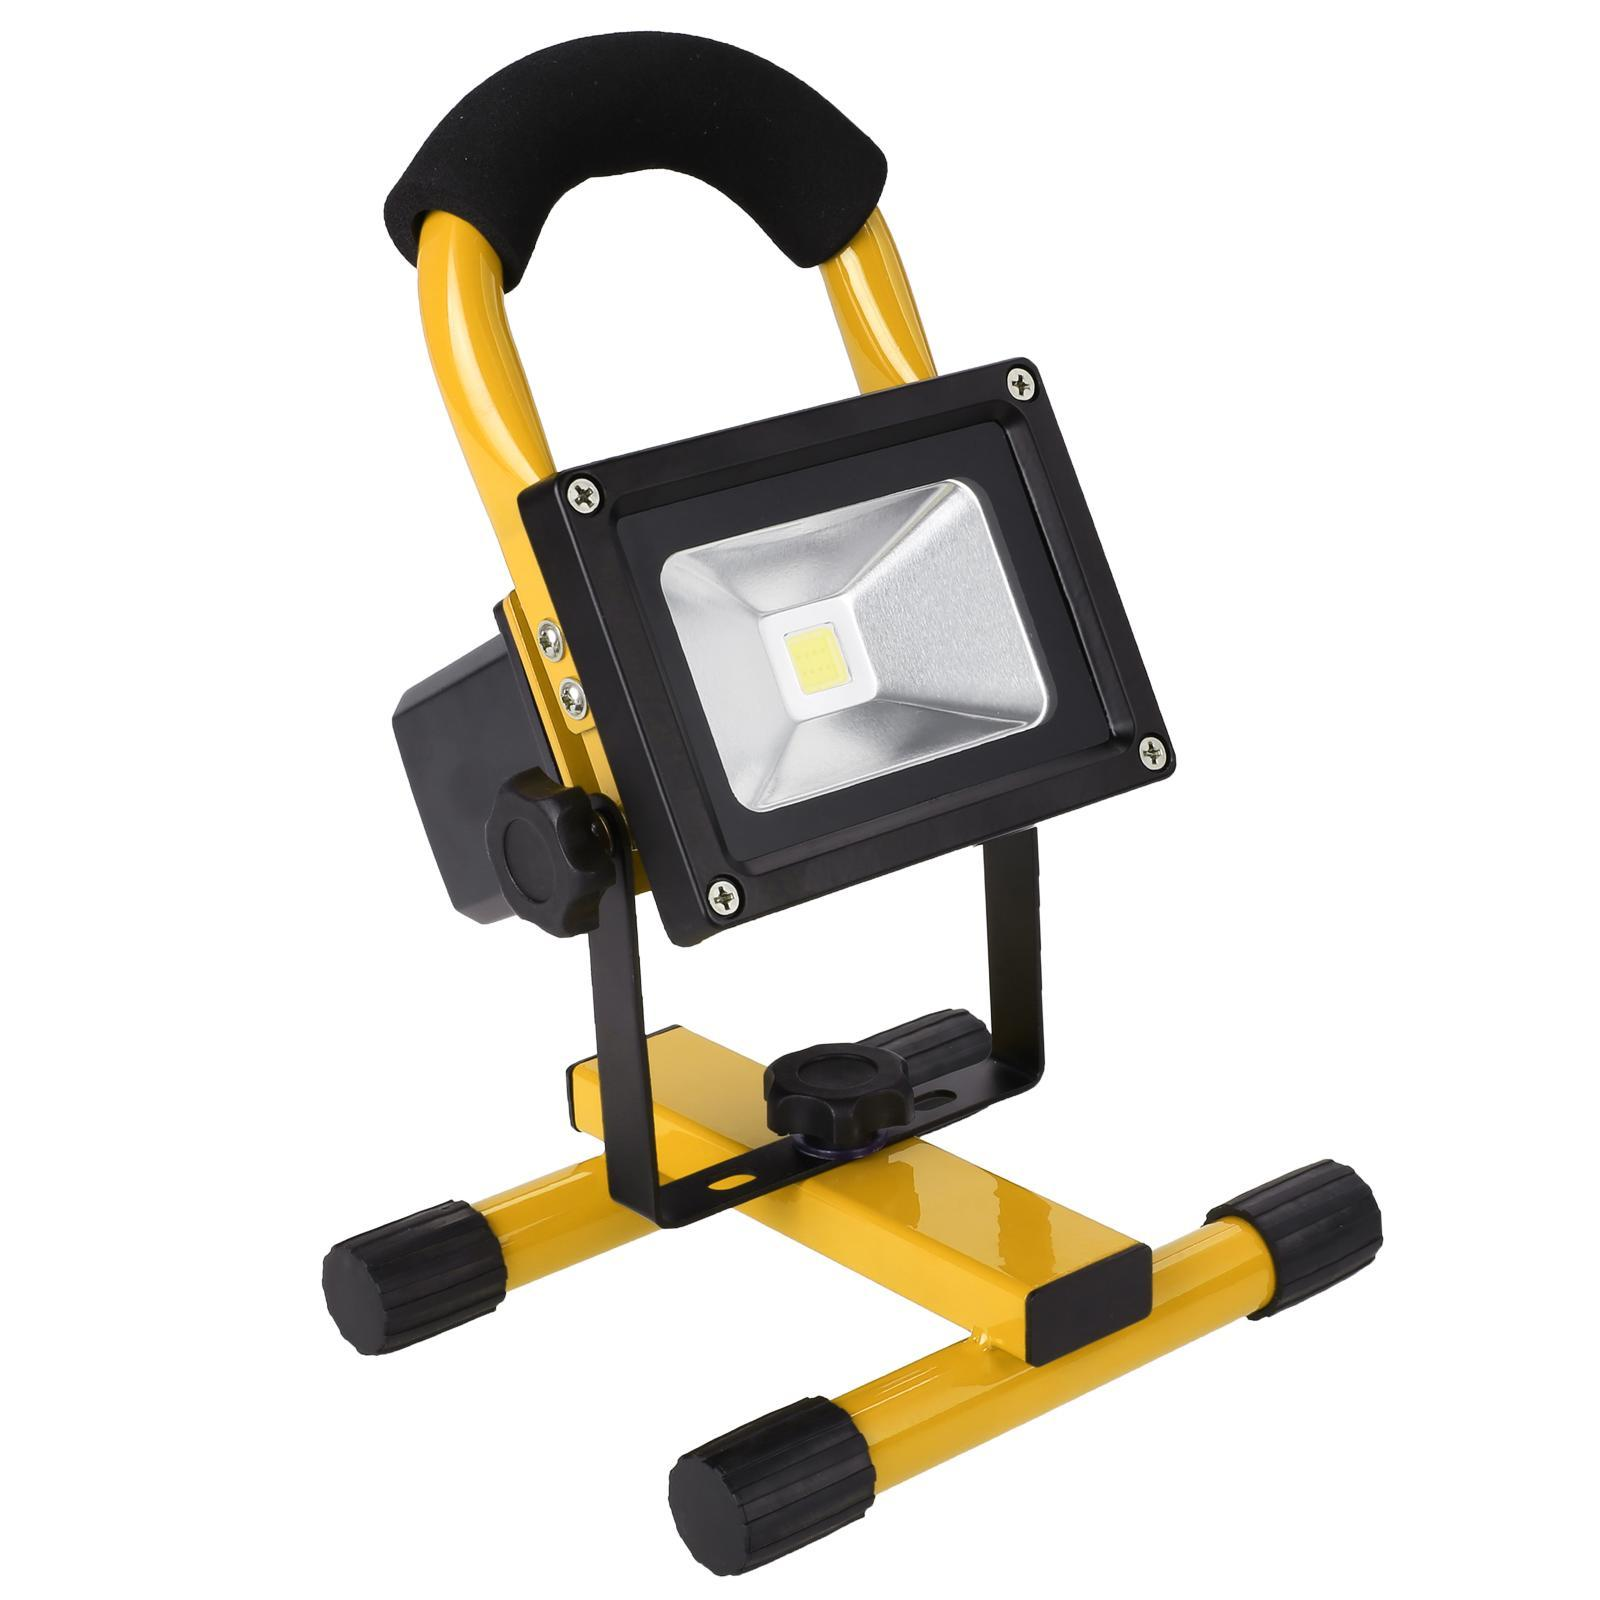 Rechargeable 10W Wireless LED Flood Light, Outdoor Camping Hiking Lamp US Plug BETT